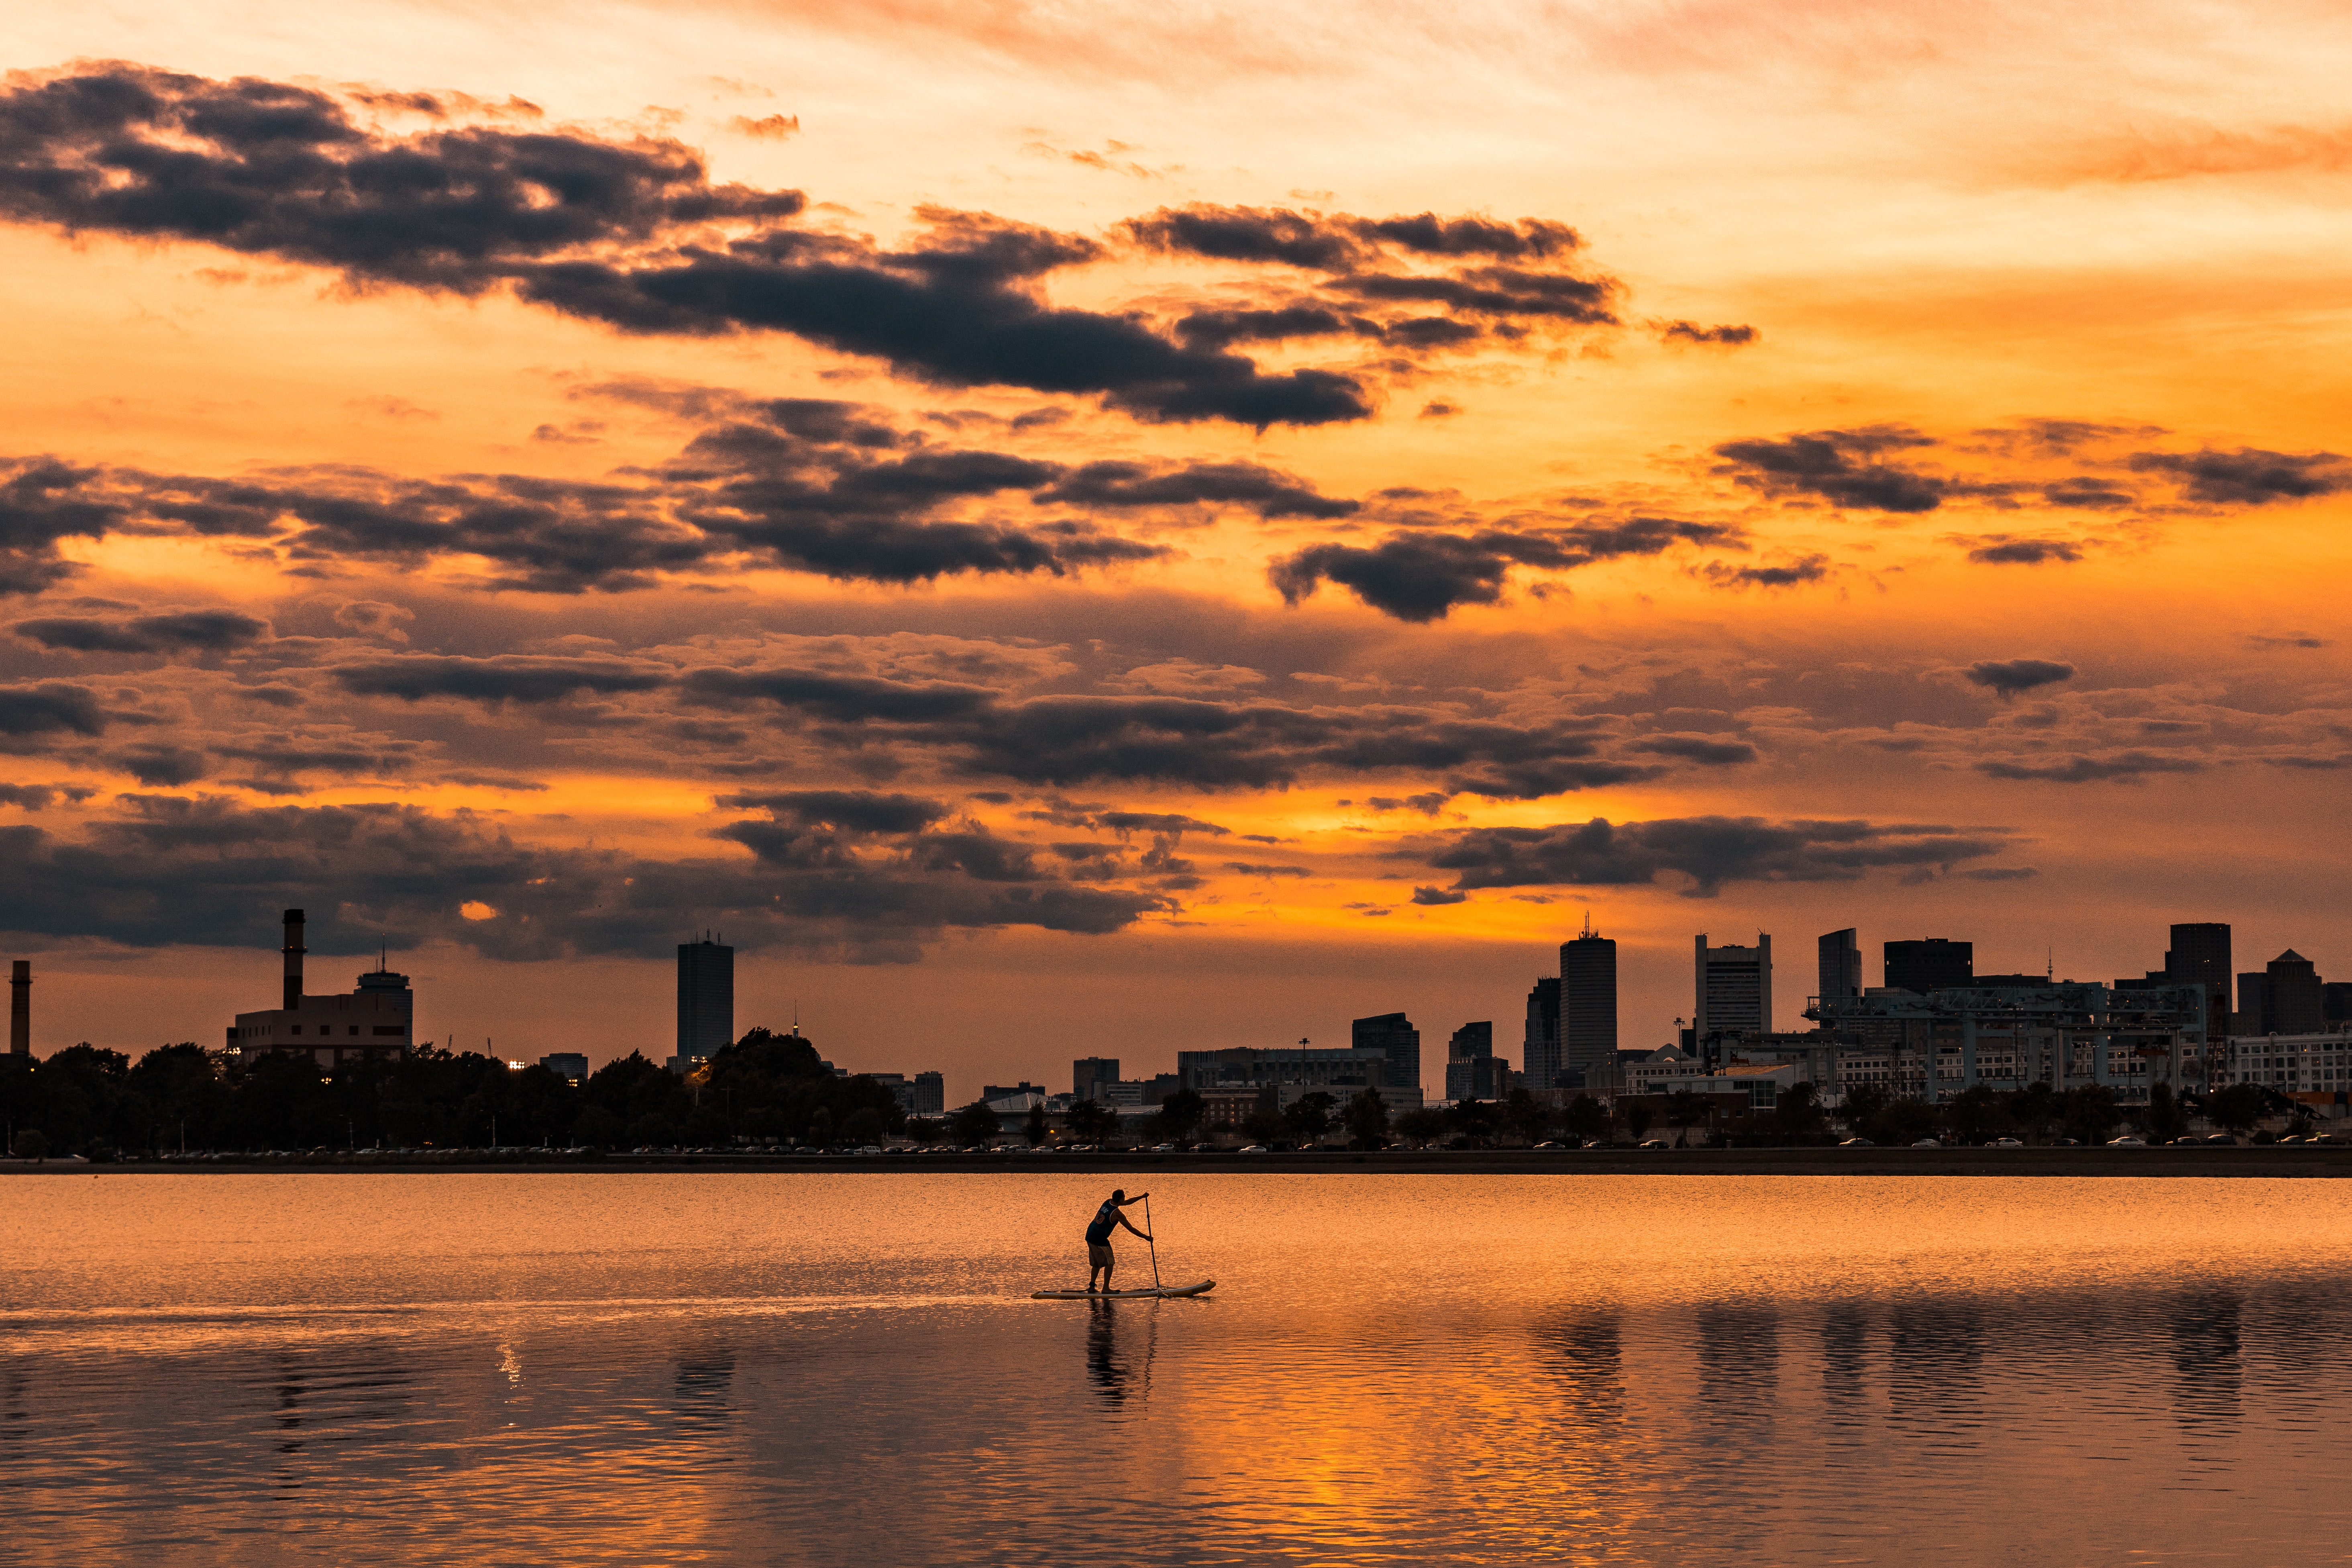 landscape photography of silhouette of man on boat near city buildings